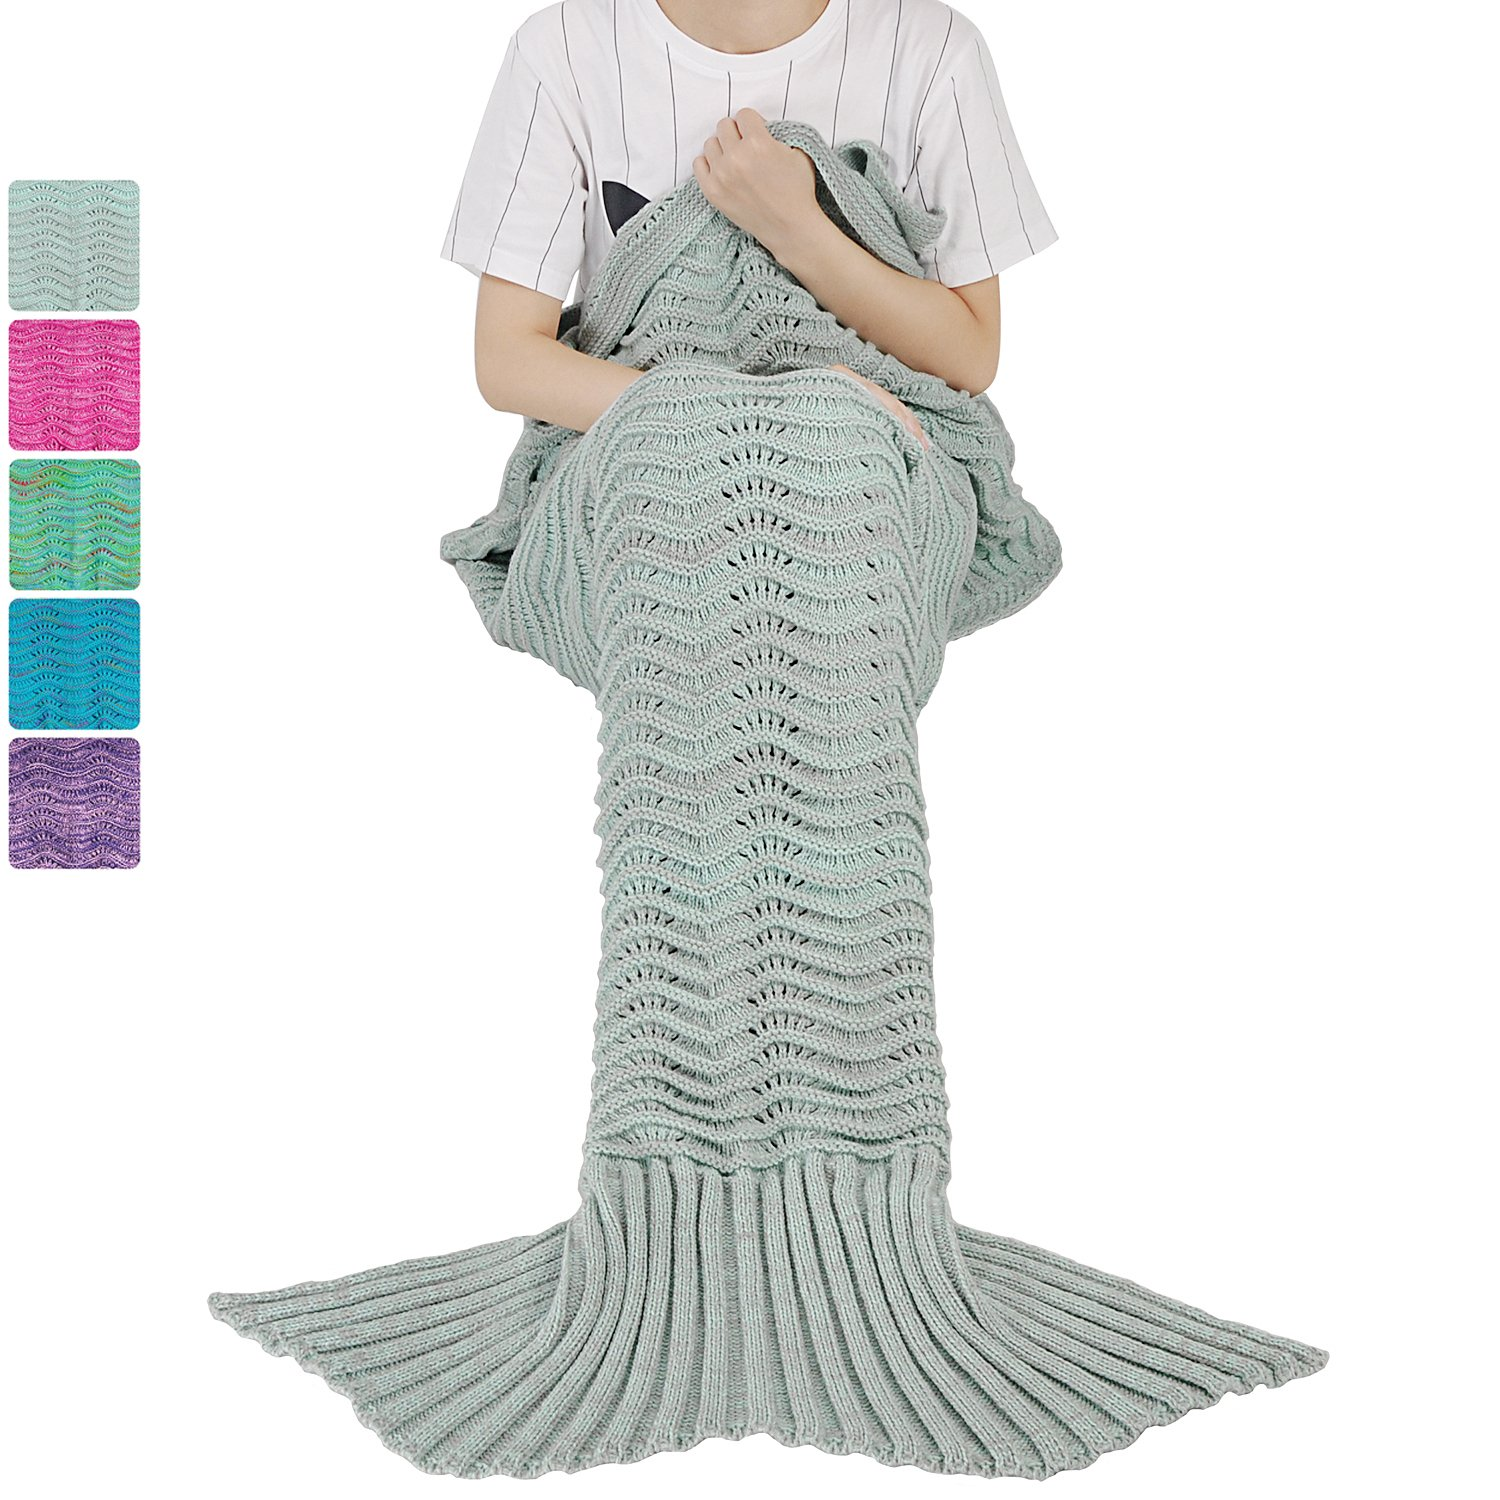 Mermaid Tail Blanket for Teen Girls with Anti-slip Neck Strap Wave Pattern | Soft Sleeping Bag for All Seasons Grey/Mint Green